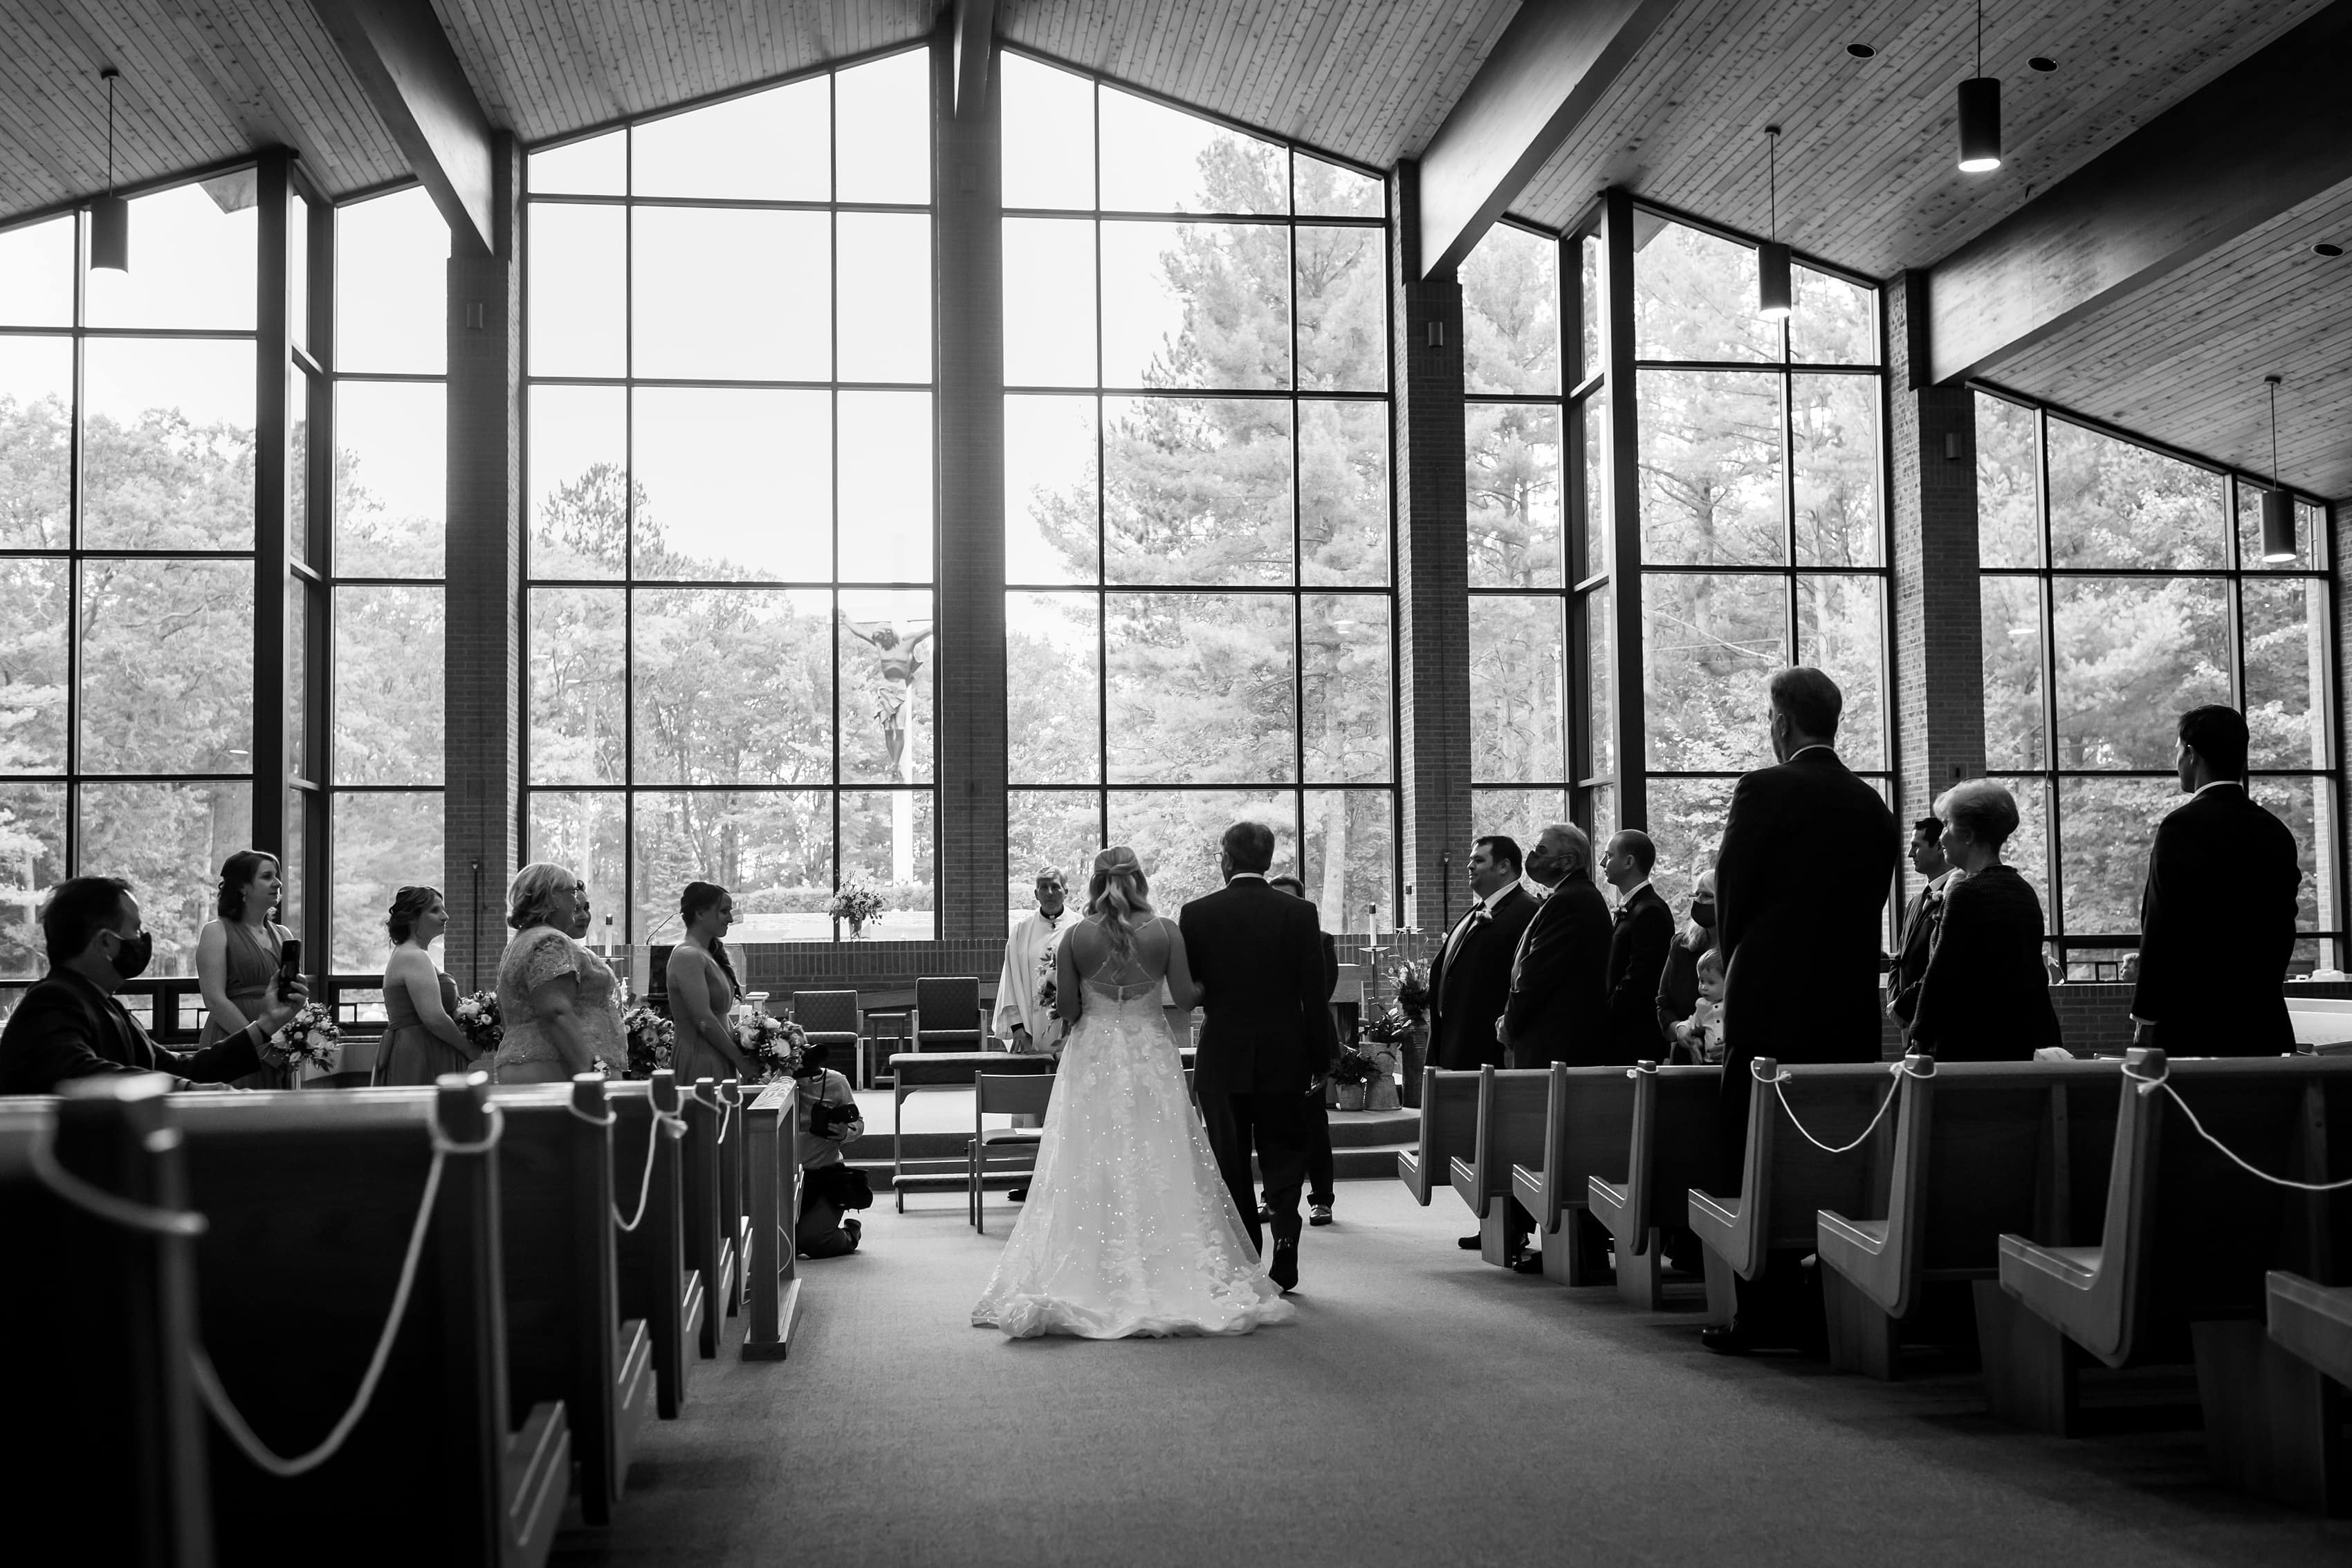 Bride walks down the aisle with her father during wedding ceremony at Cross in the Woods in Indian River, Michigan